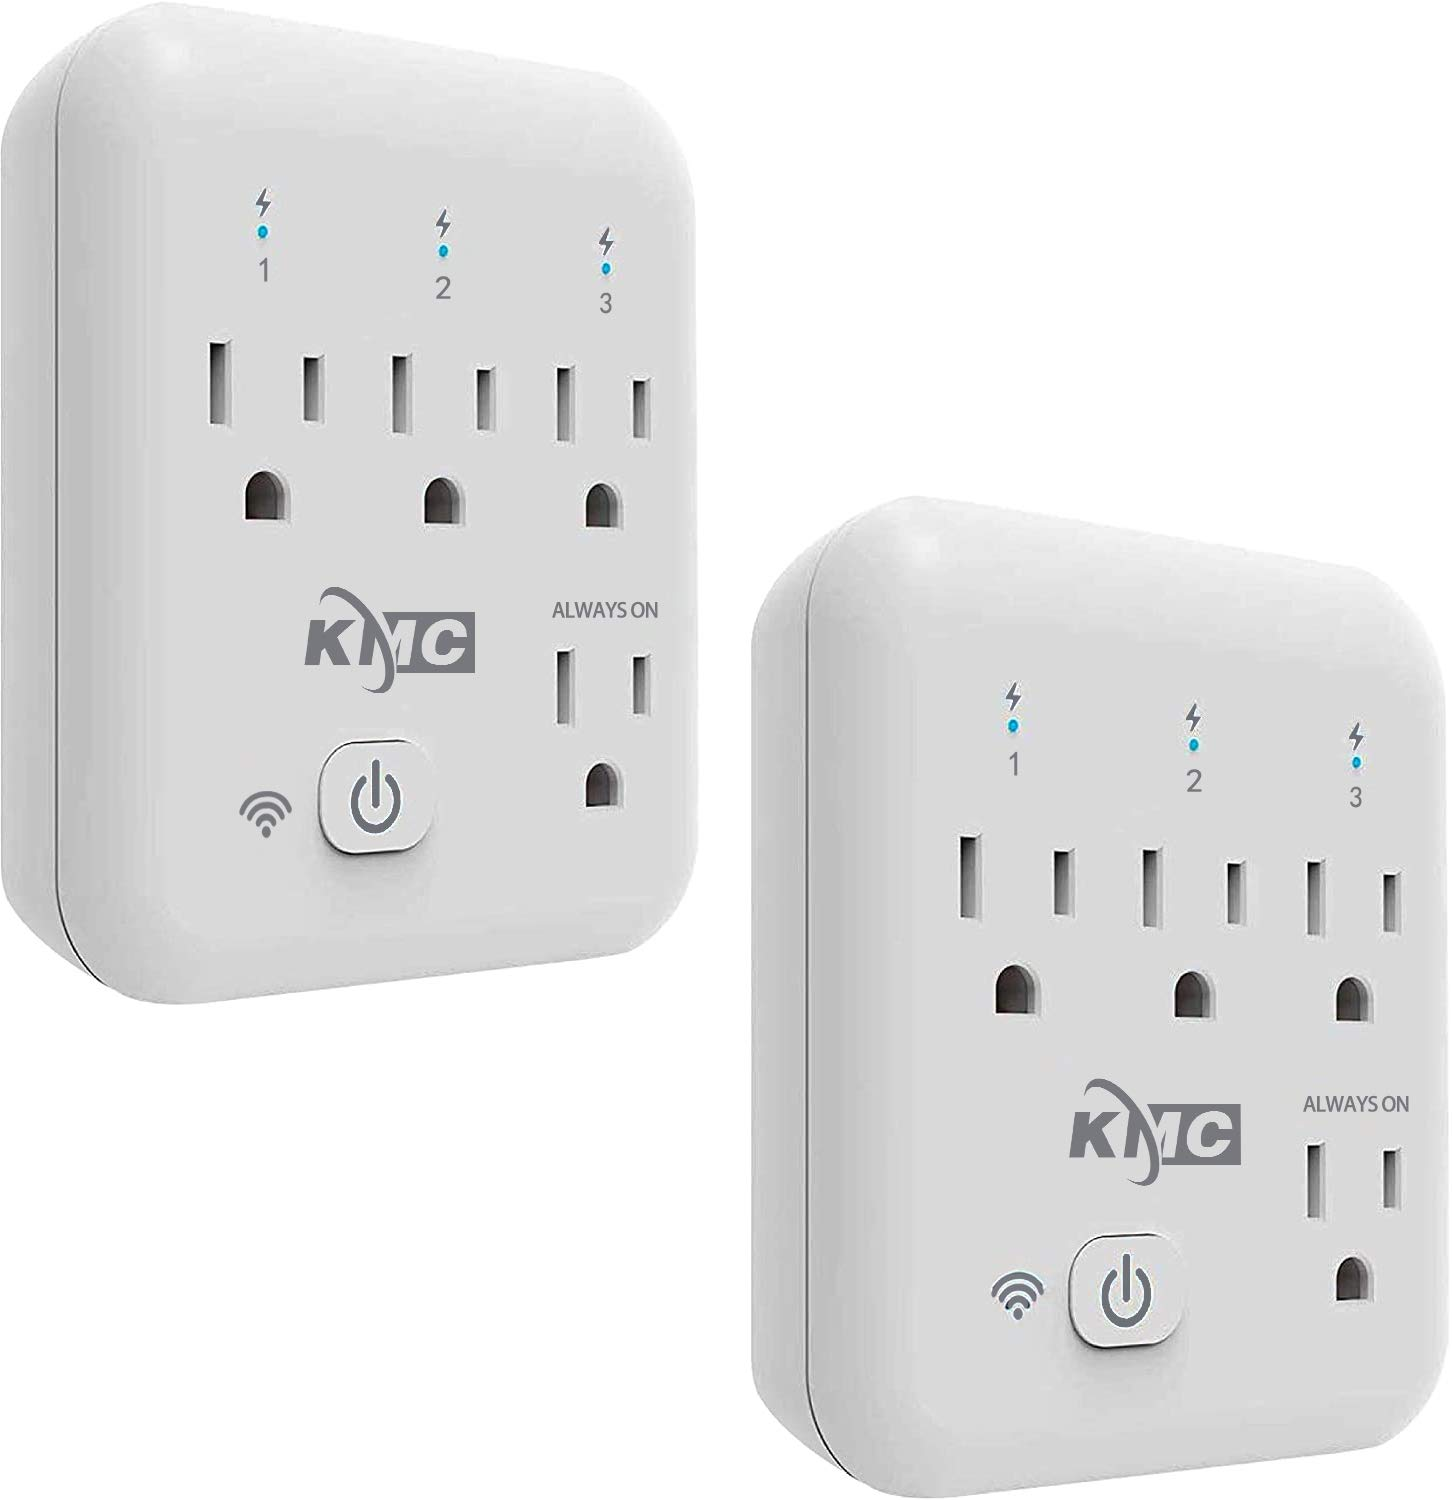 Smart plug, KMC 4 Outlet Energy Monitoring Wifi Outlet Compatible with Alexa, Google Home & IFTTT, No Hub Required, Remote Control Your Home Appliances from Anywhere, ETL Certified(2 Pack): Industrial & Scientific